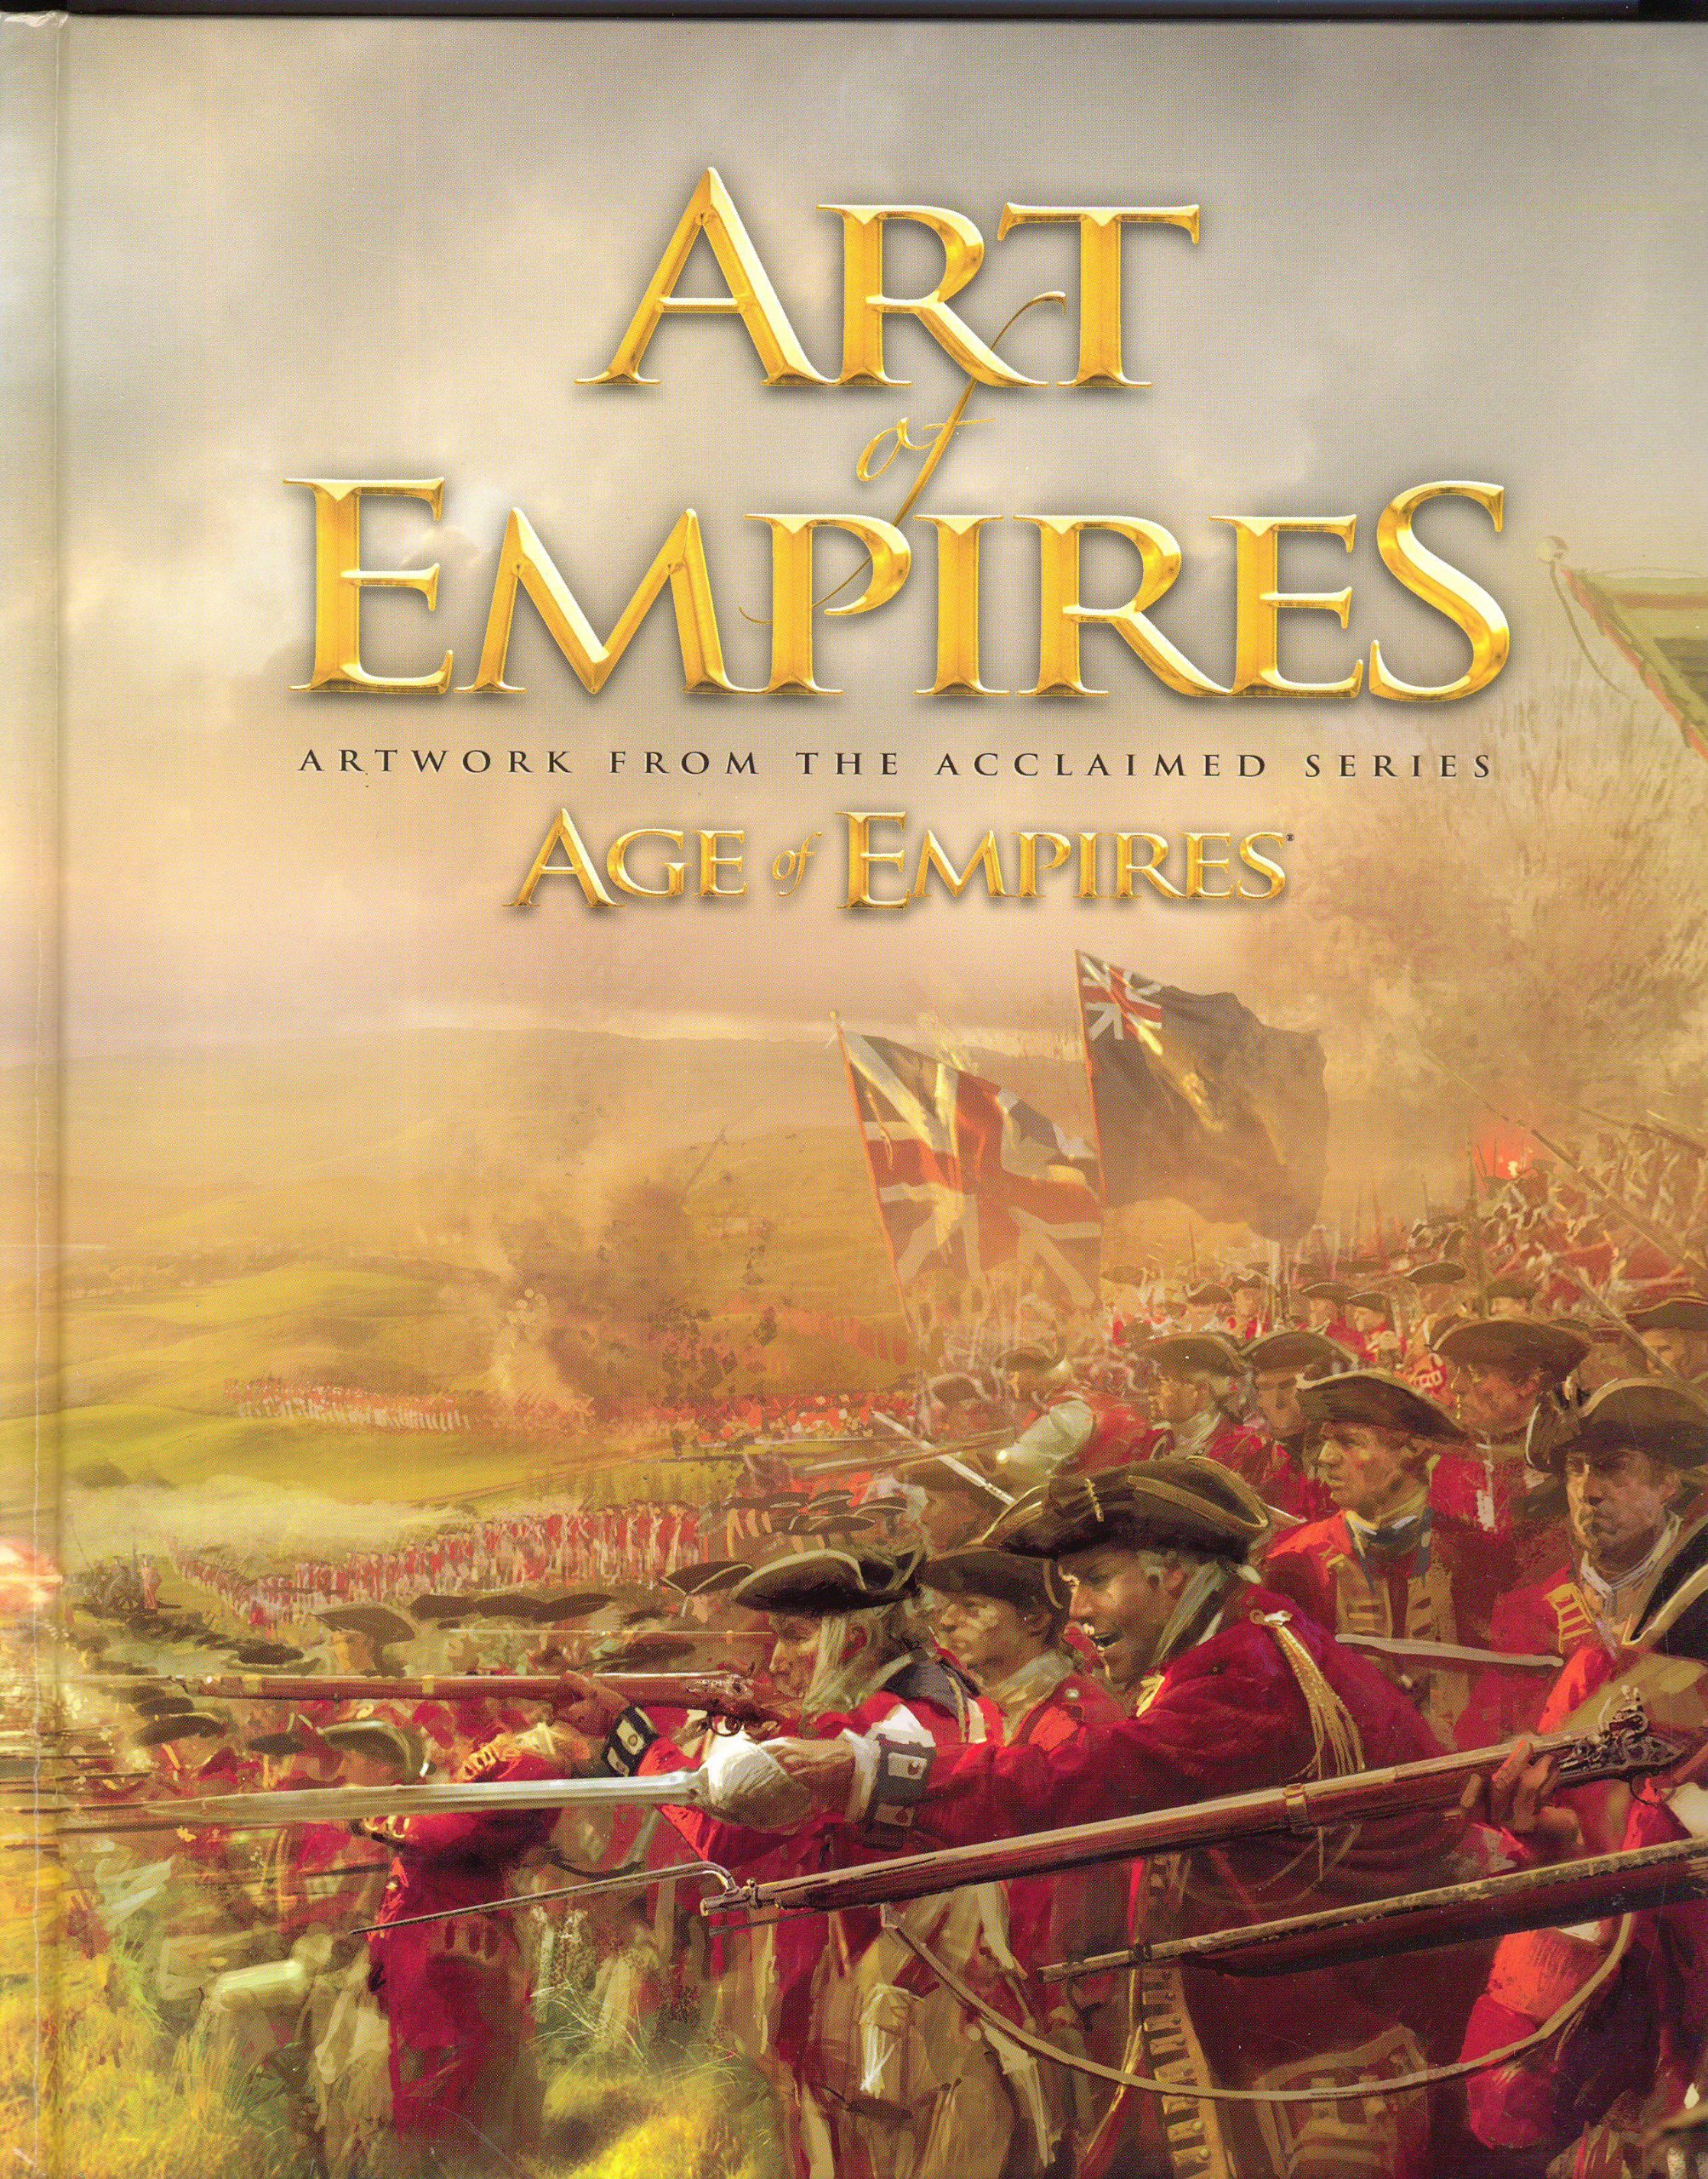 Art of Empires: Artwork from the Acclaimed Series Age of Empires PDF